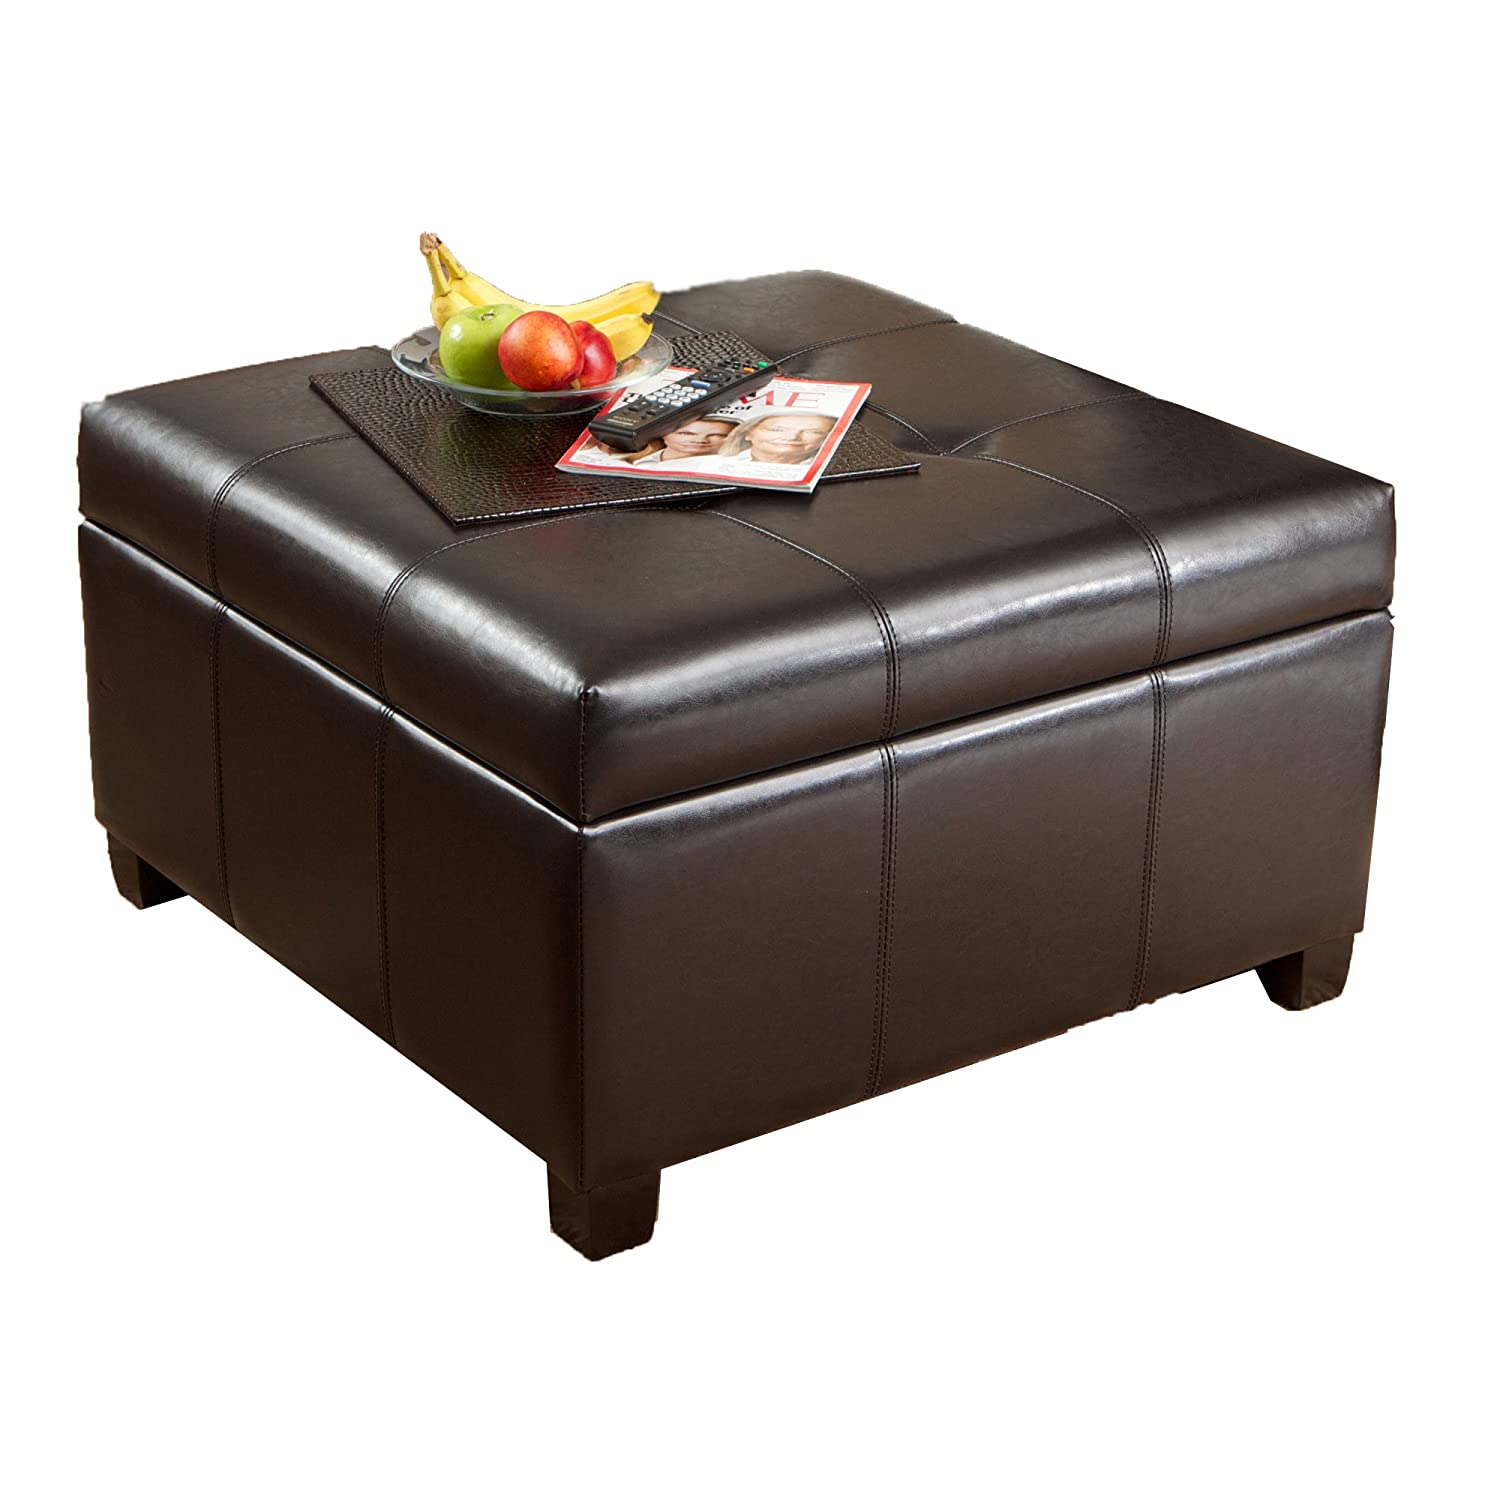 Ottoman Coffee Table Combo.Best Selling Storage Ottoman Coffee Table Square Shaped Premium Bonded Leather In Espresso Brown